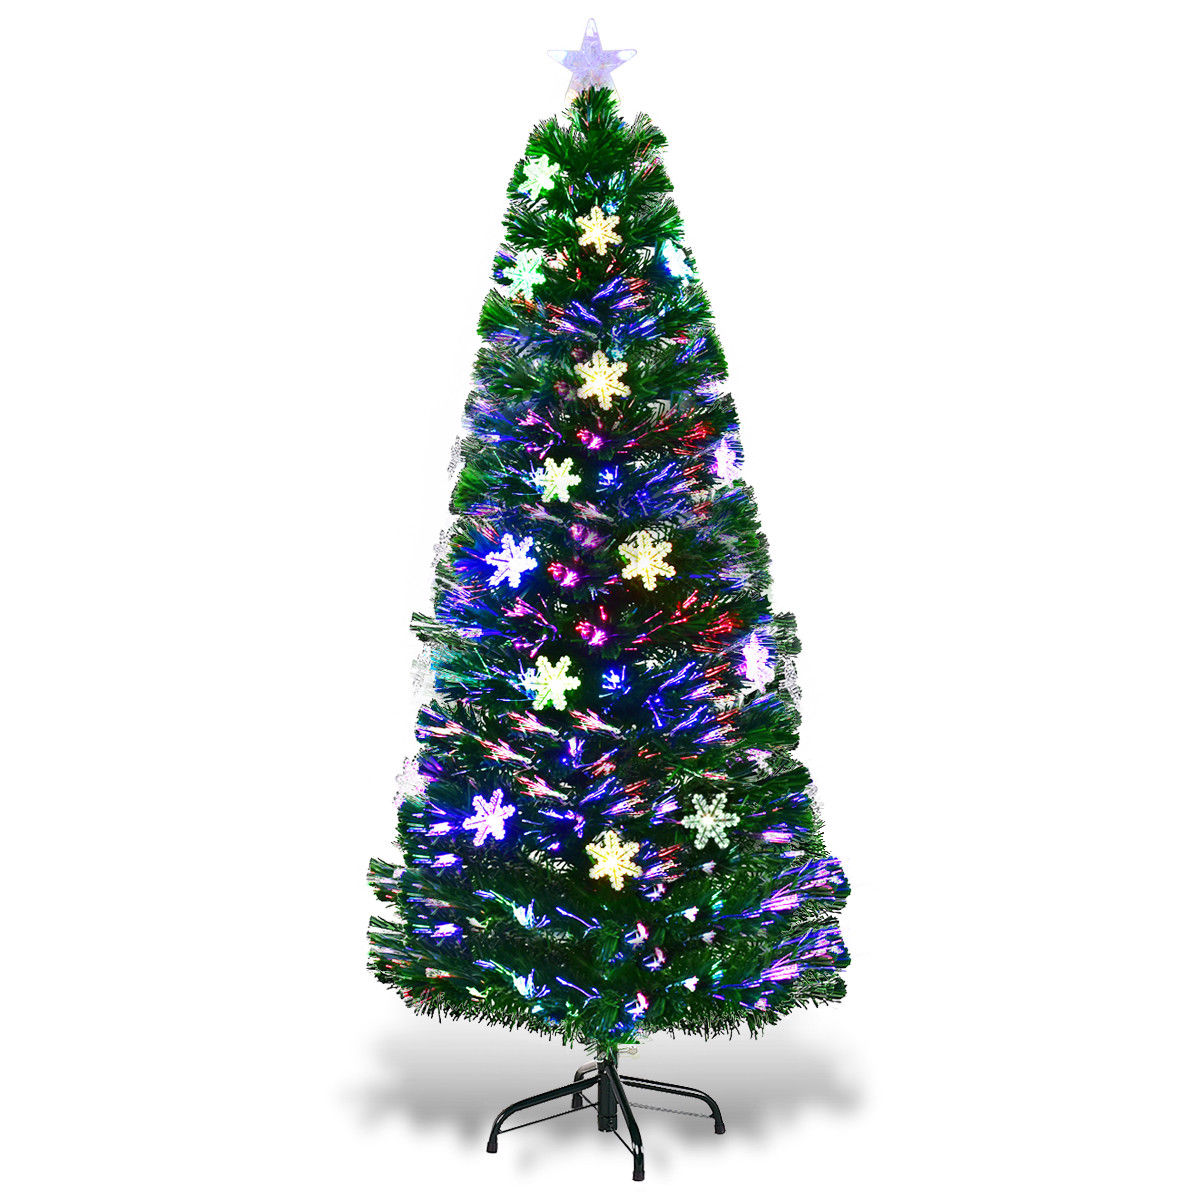 Costway 5FT Pre-Lit Fiber Optic Artificial Christmas Tree w/Multicolor Lights Snowflakes